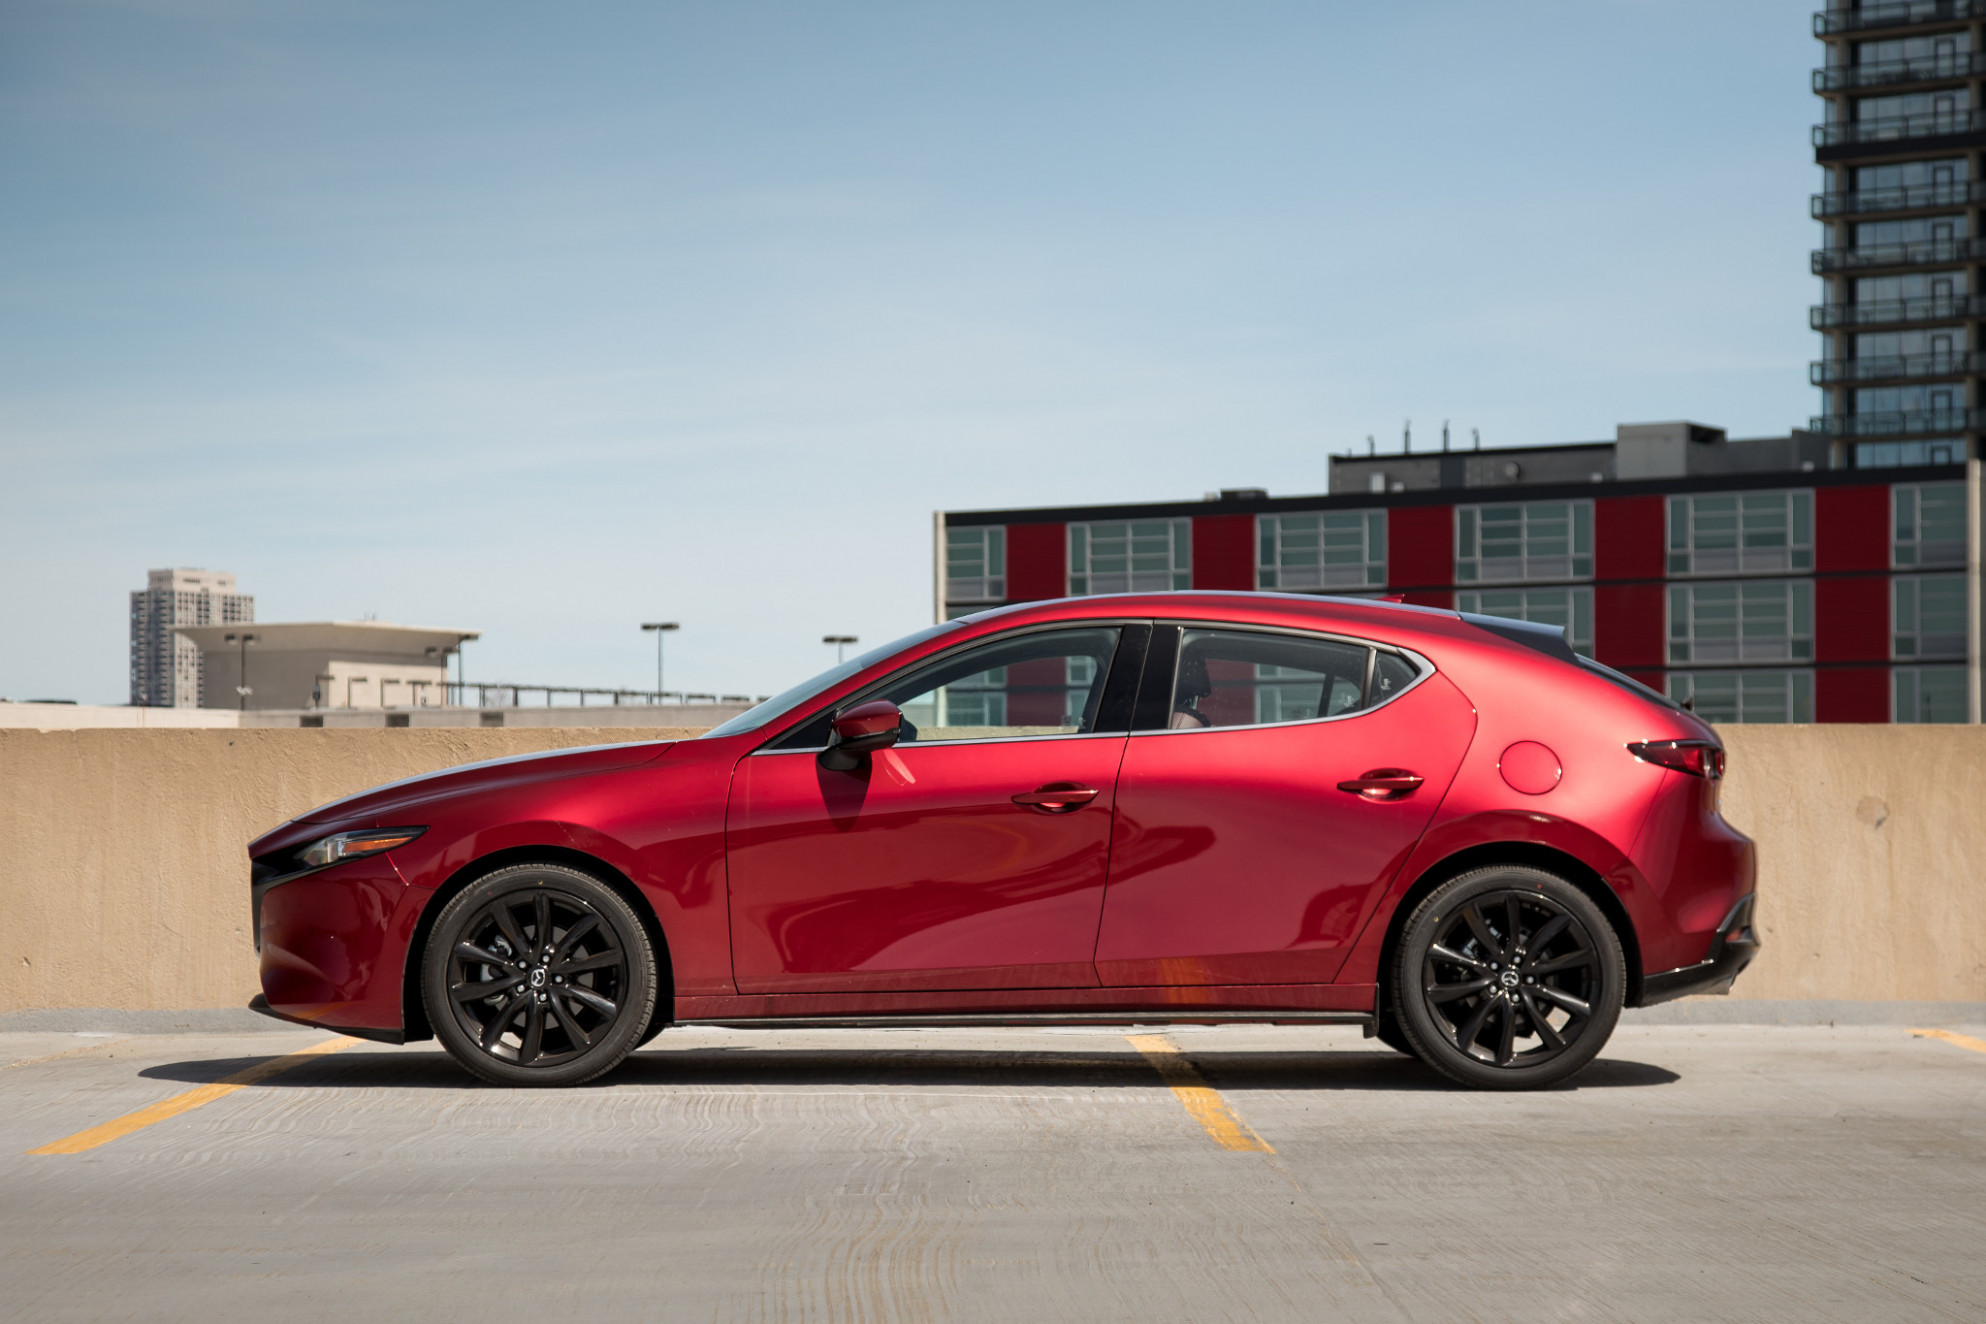 Mazda9: Which Should You Buy, 9 or 9? | News | Cars.com